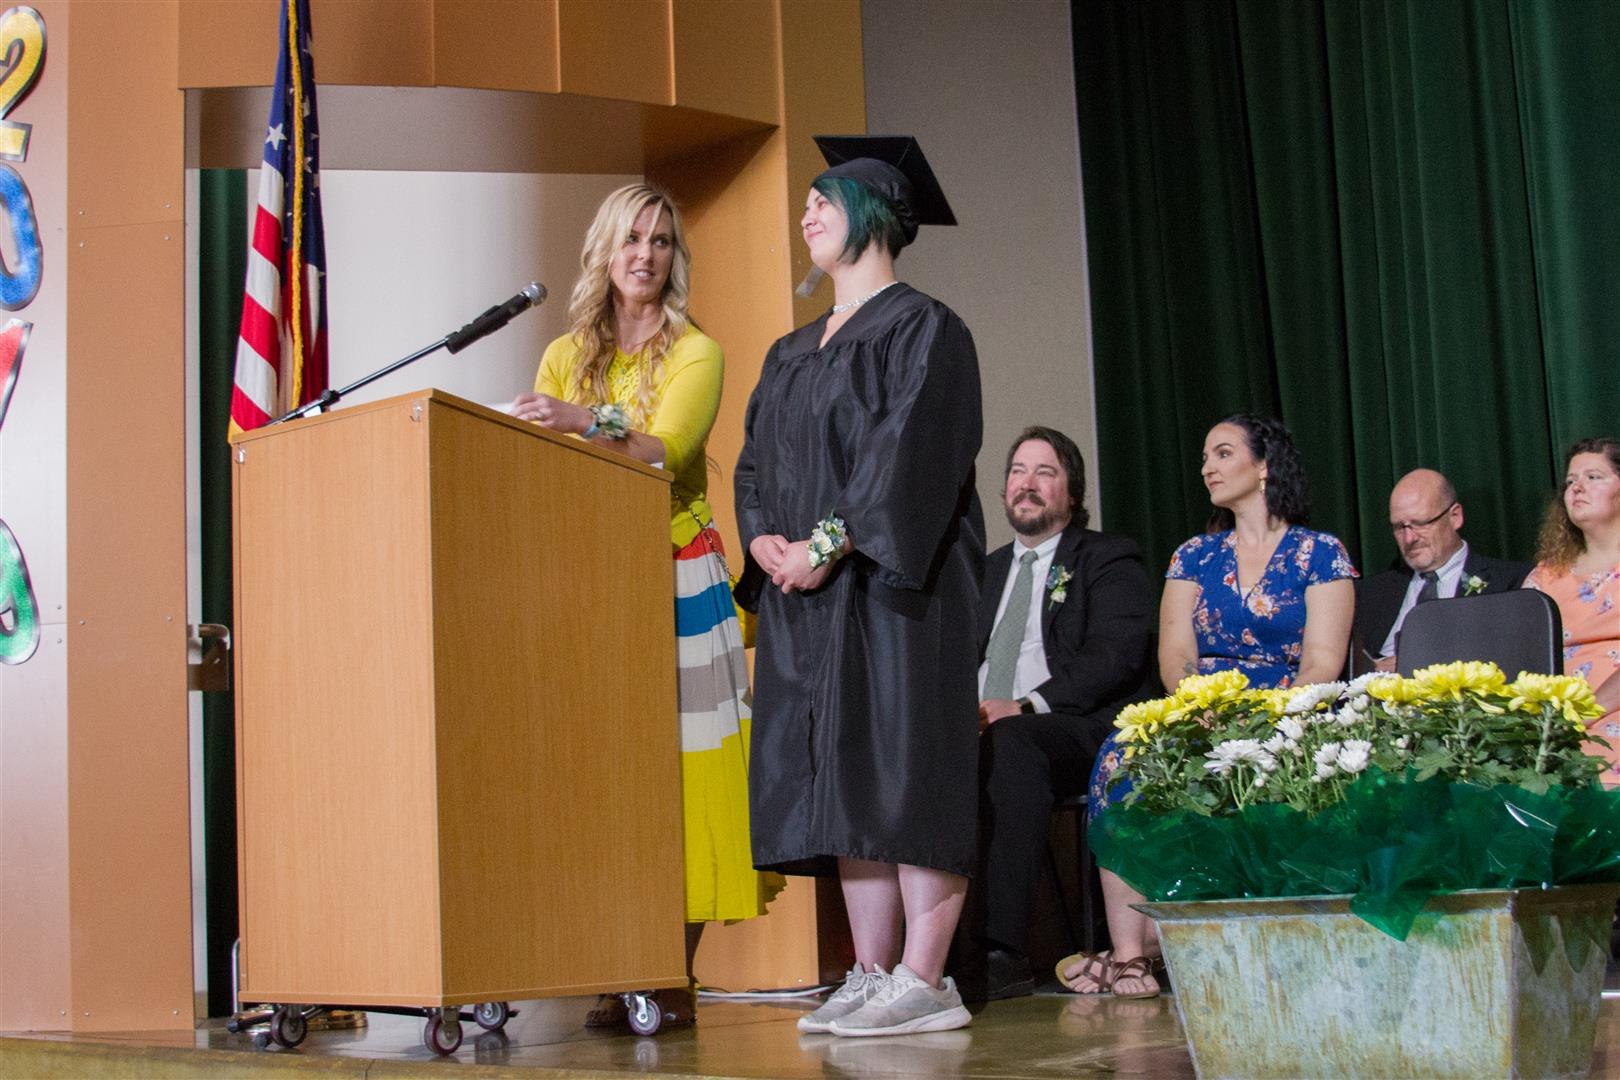 1560450003-team-high-class-of-2019-commencement-24__large_